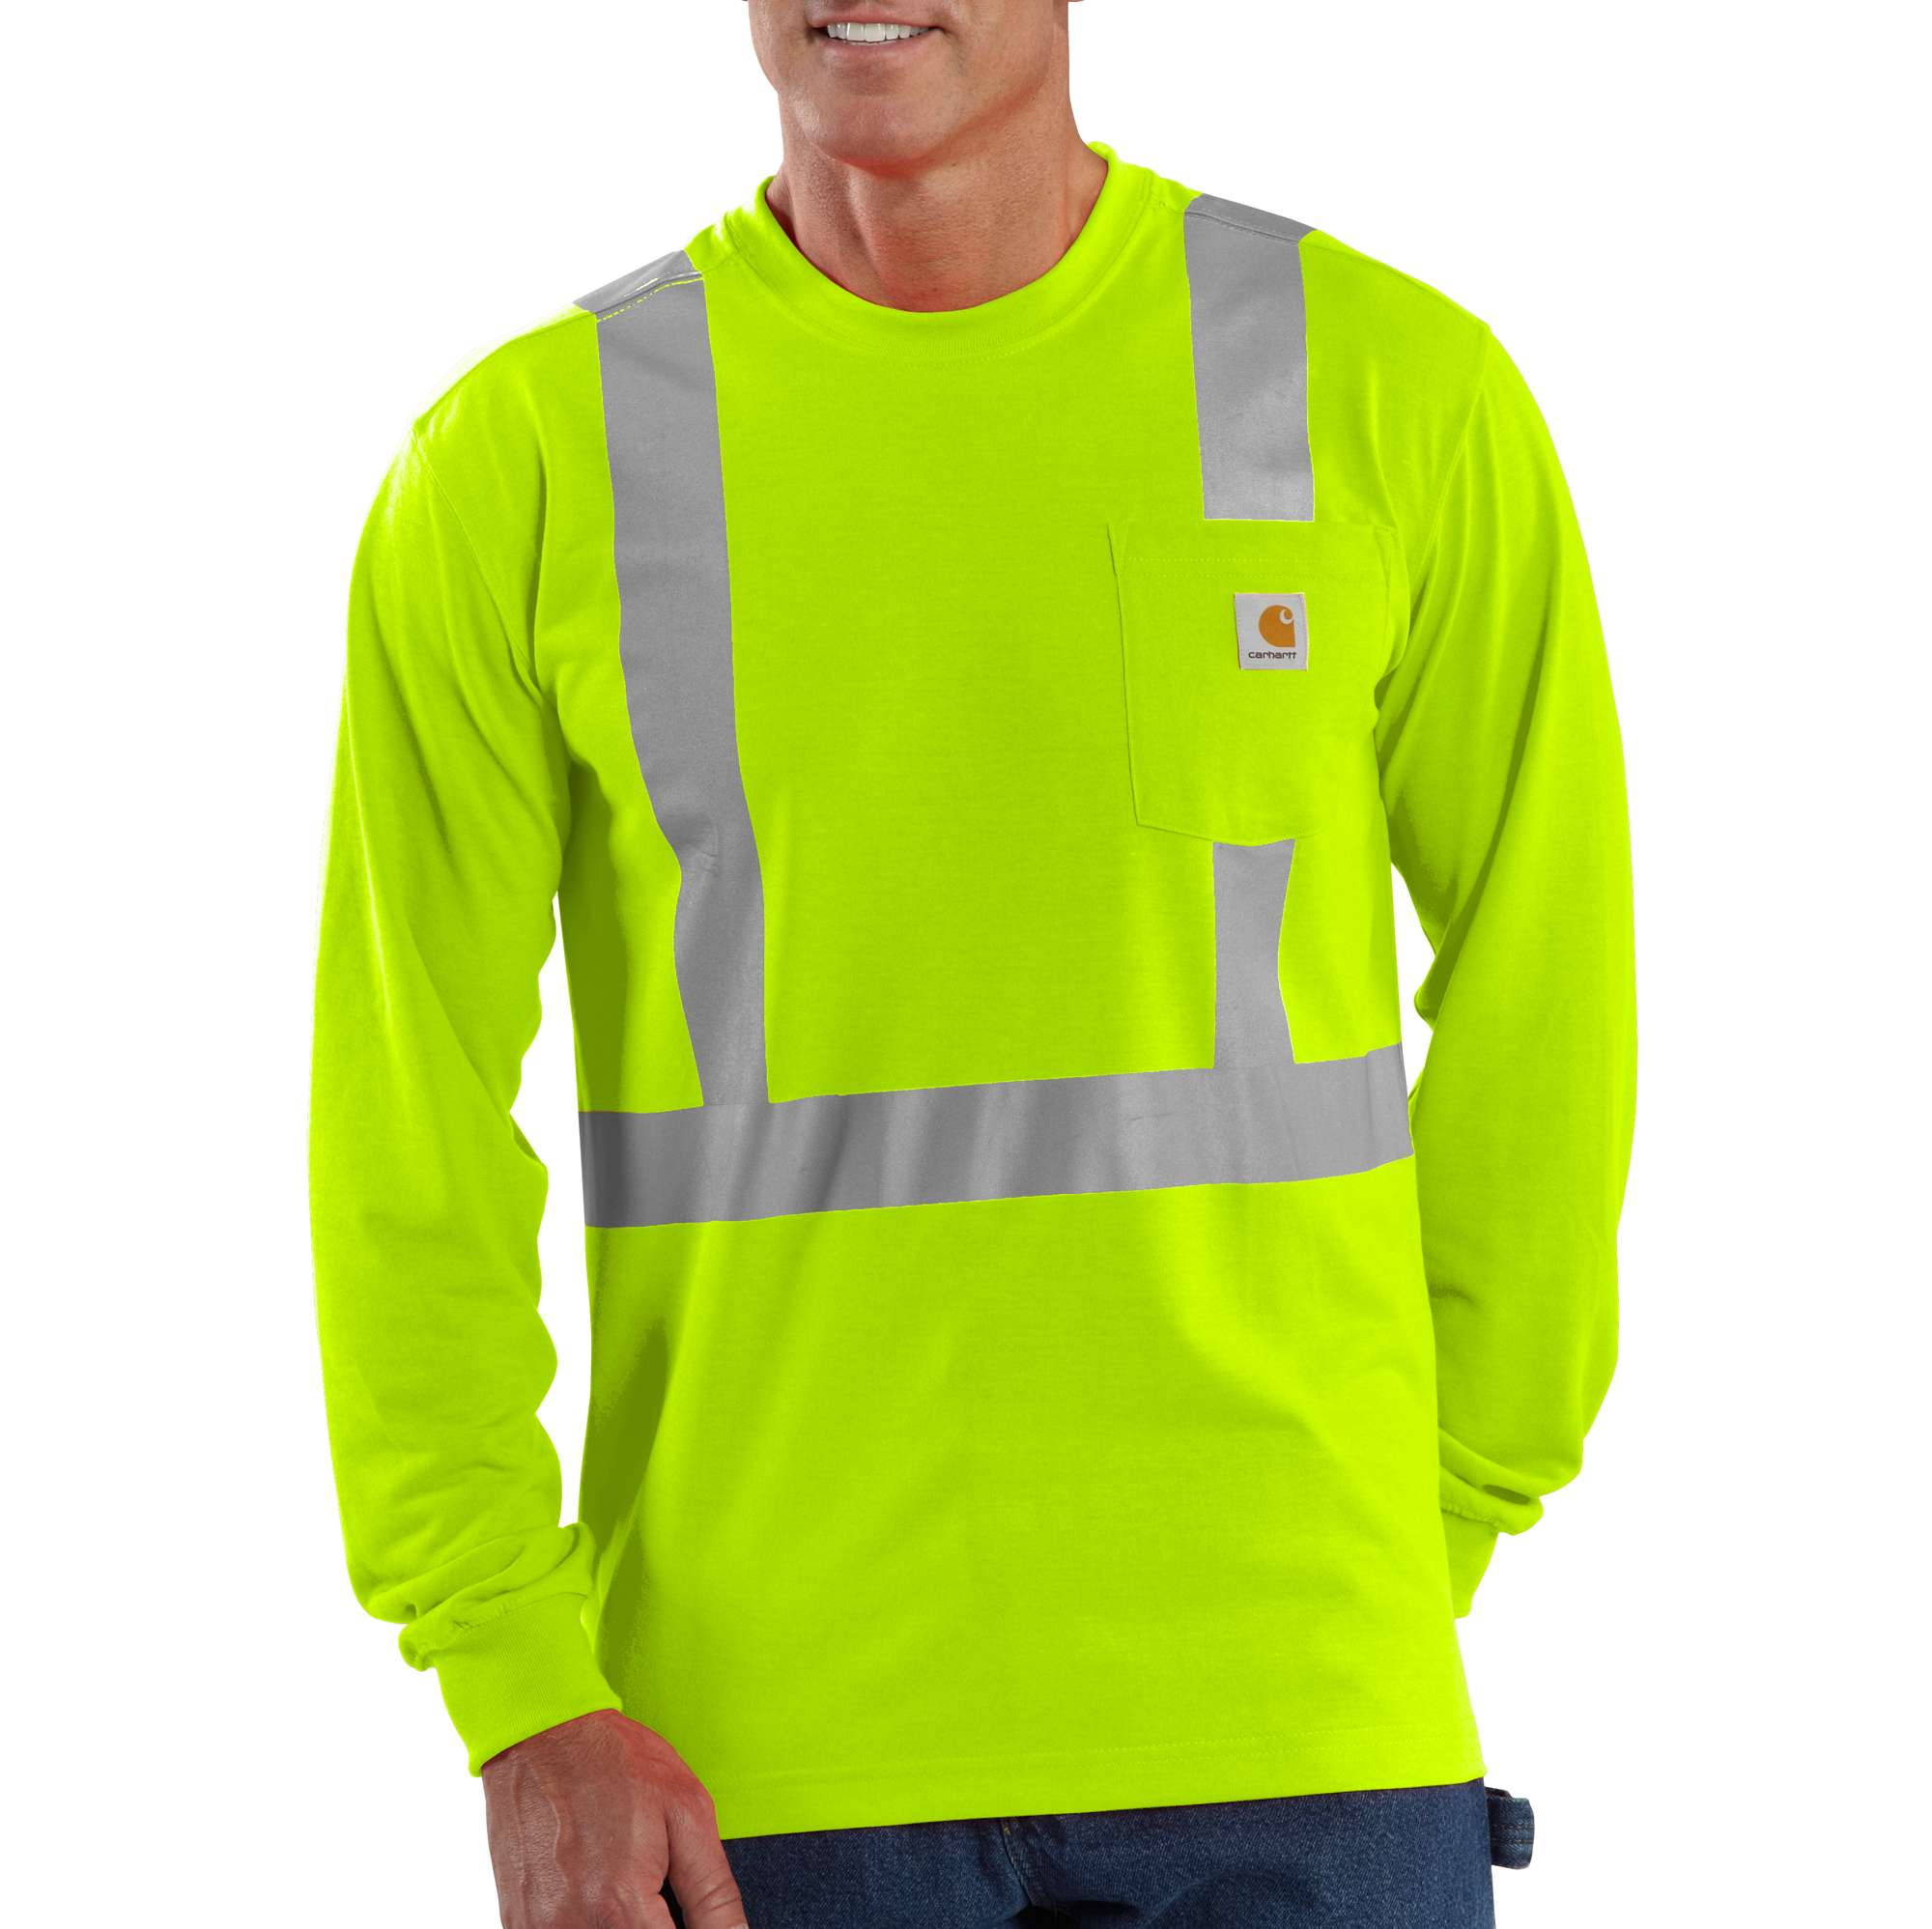 photo: Carhartt High-Visibility Class 2 Long Sleeve Work-Dry T-Shirt